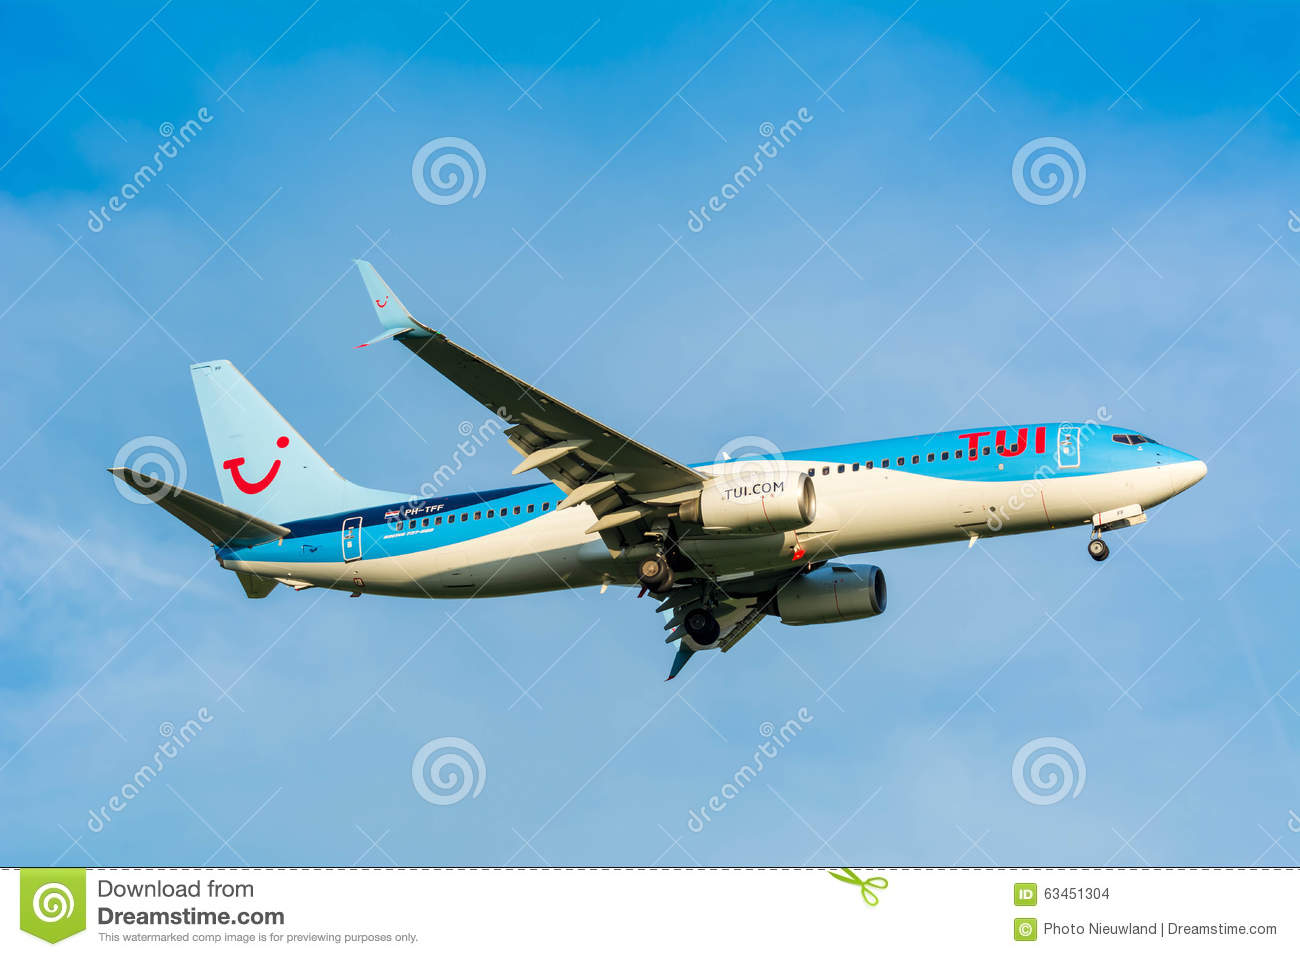 Plane from TUI (Arkefly) Boeing 737-800 PH-TFF is preparing for landing